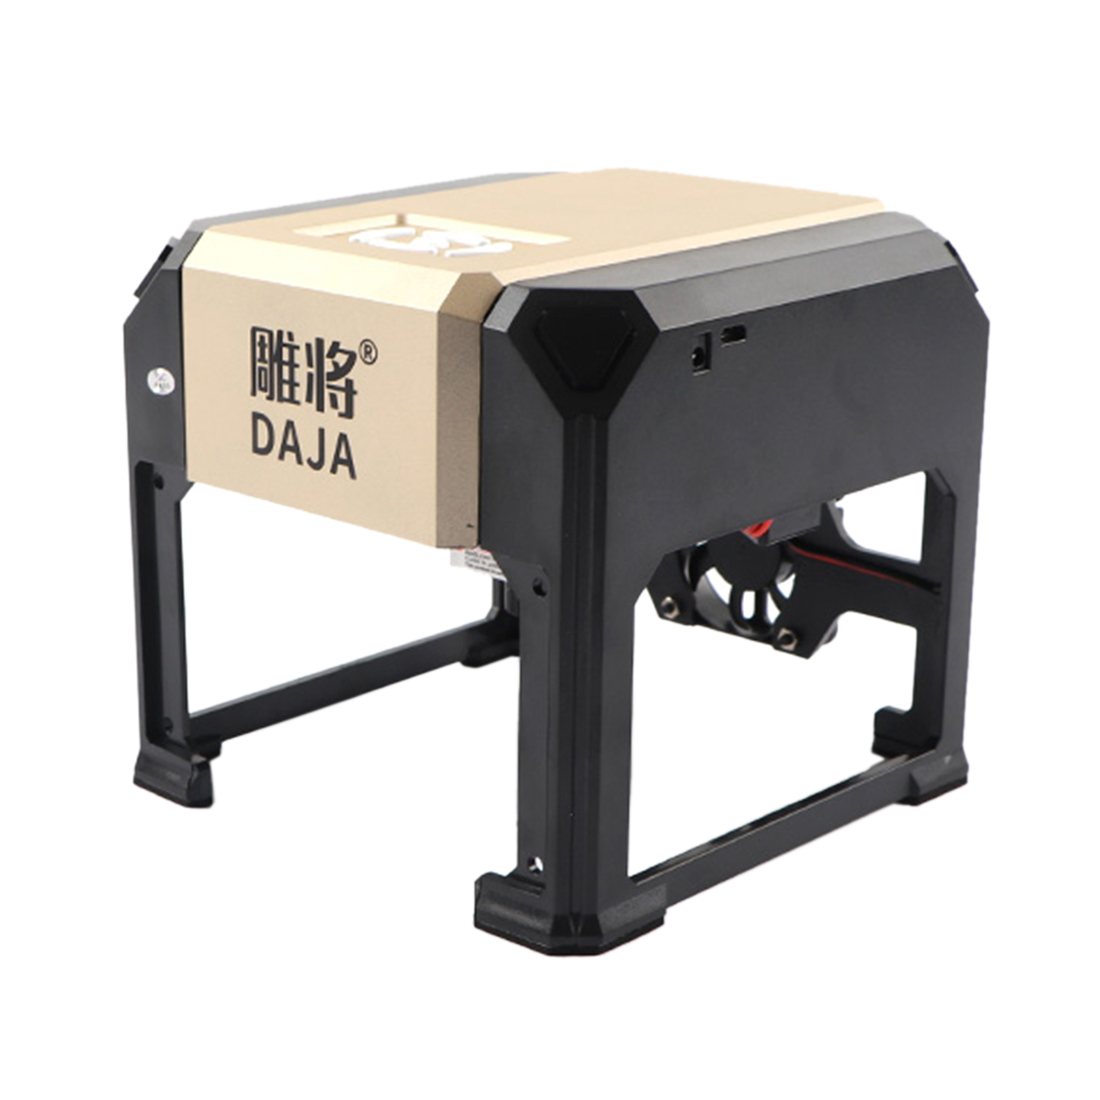 K5 3000mW DIY Mini Laser Engraver Mark Printer Laser Engraving Machine Education Christmas Birthday Gift-UK Plug/US Plug/EU Plug